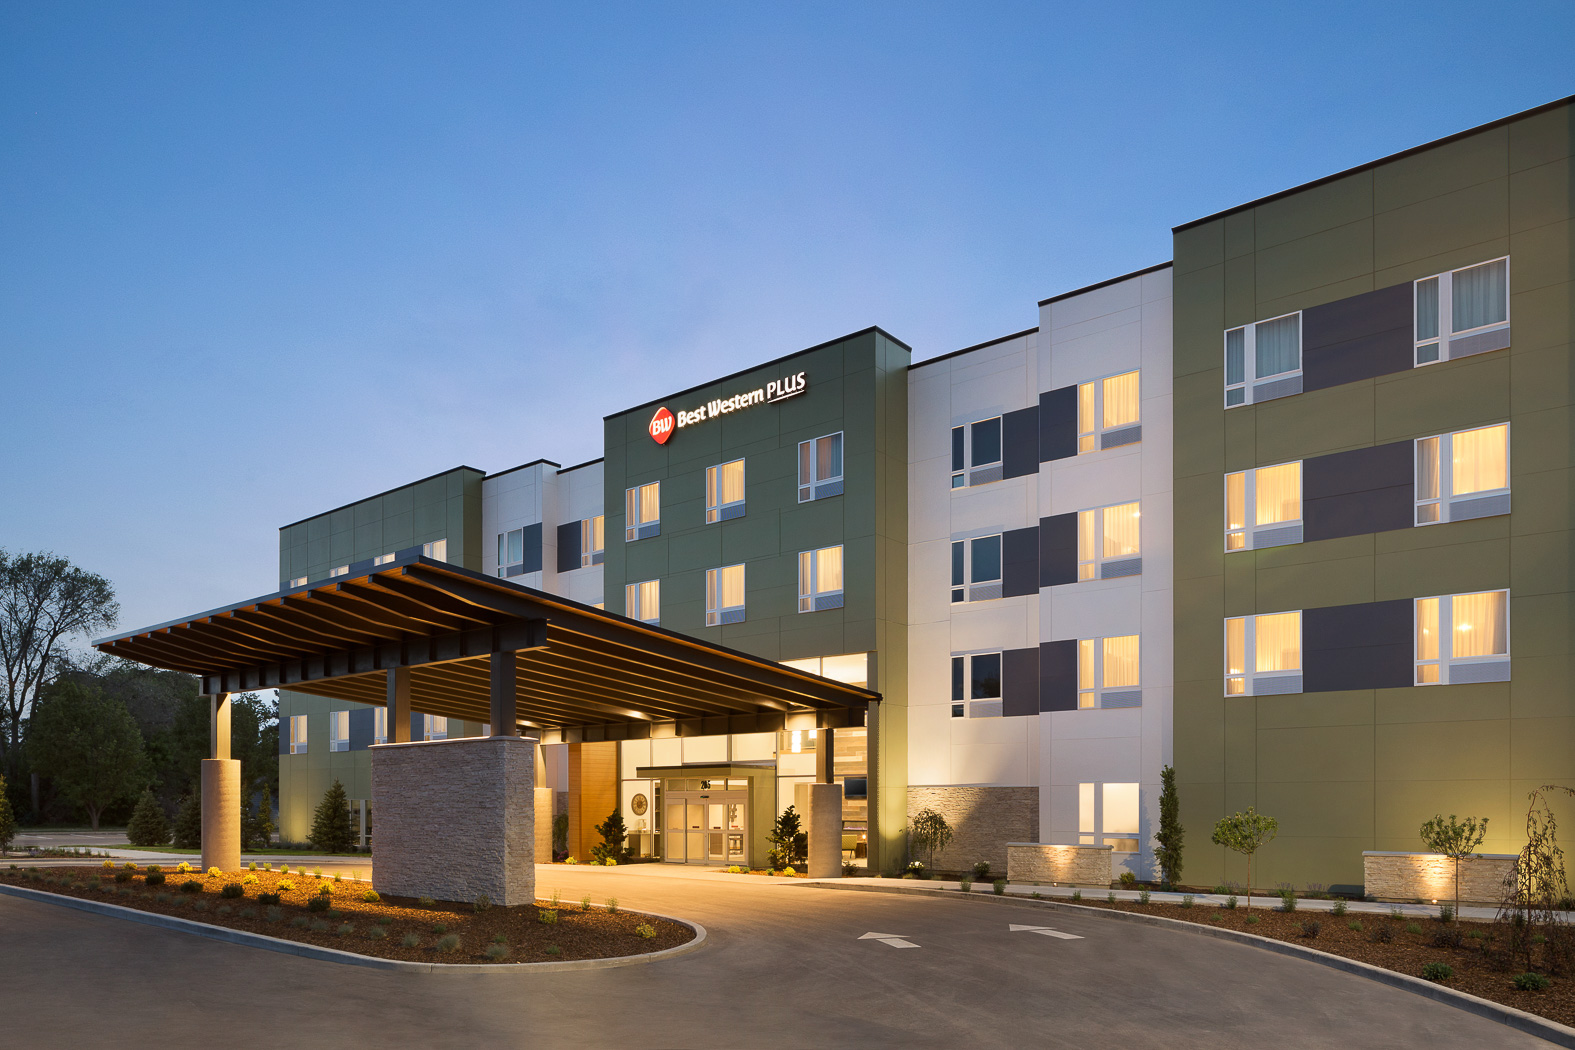 Best Western Plus Peppertree Nampa Civic Center Inn Official Hotel Website